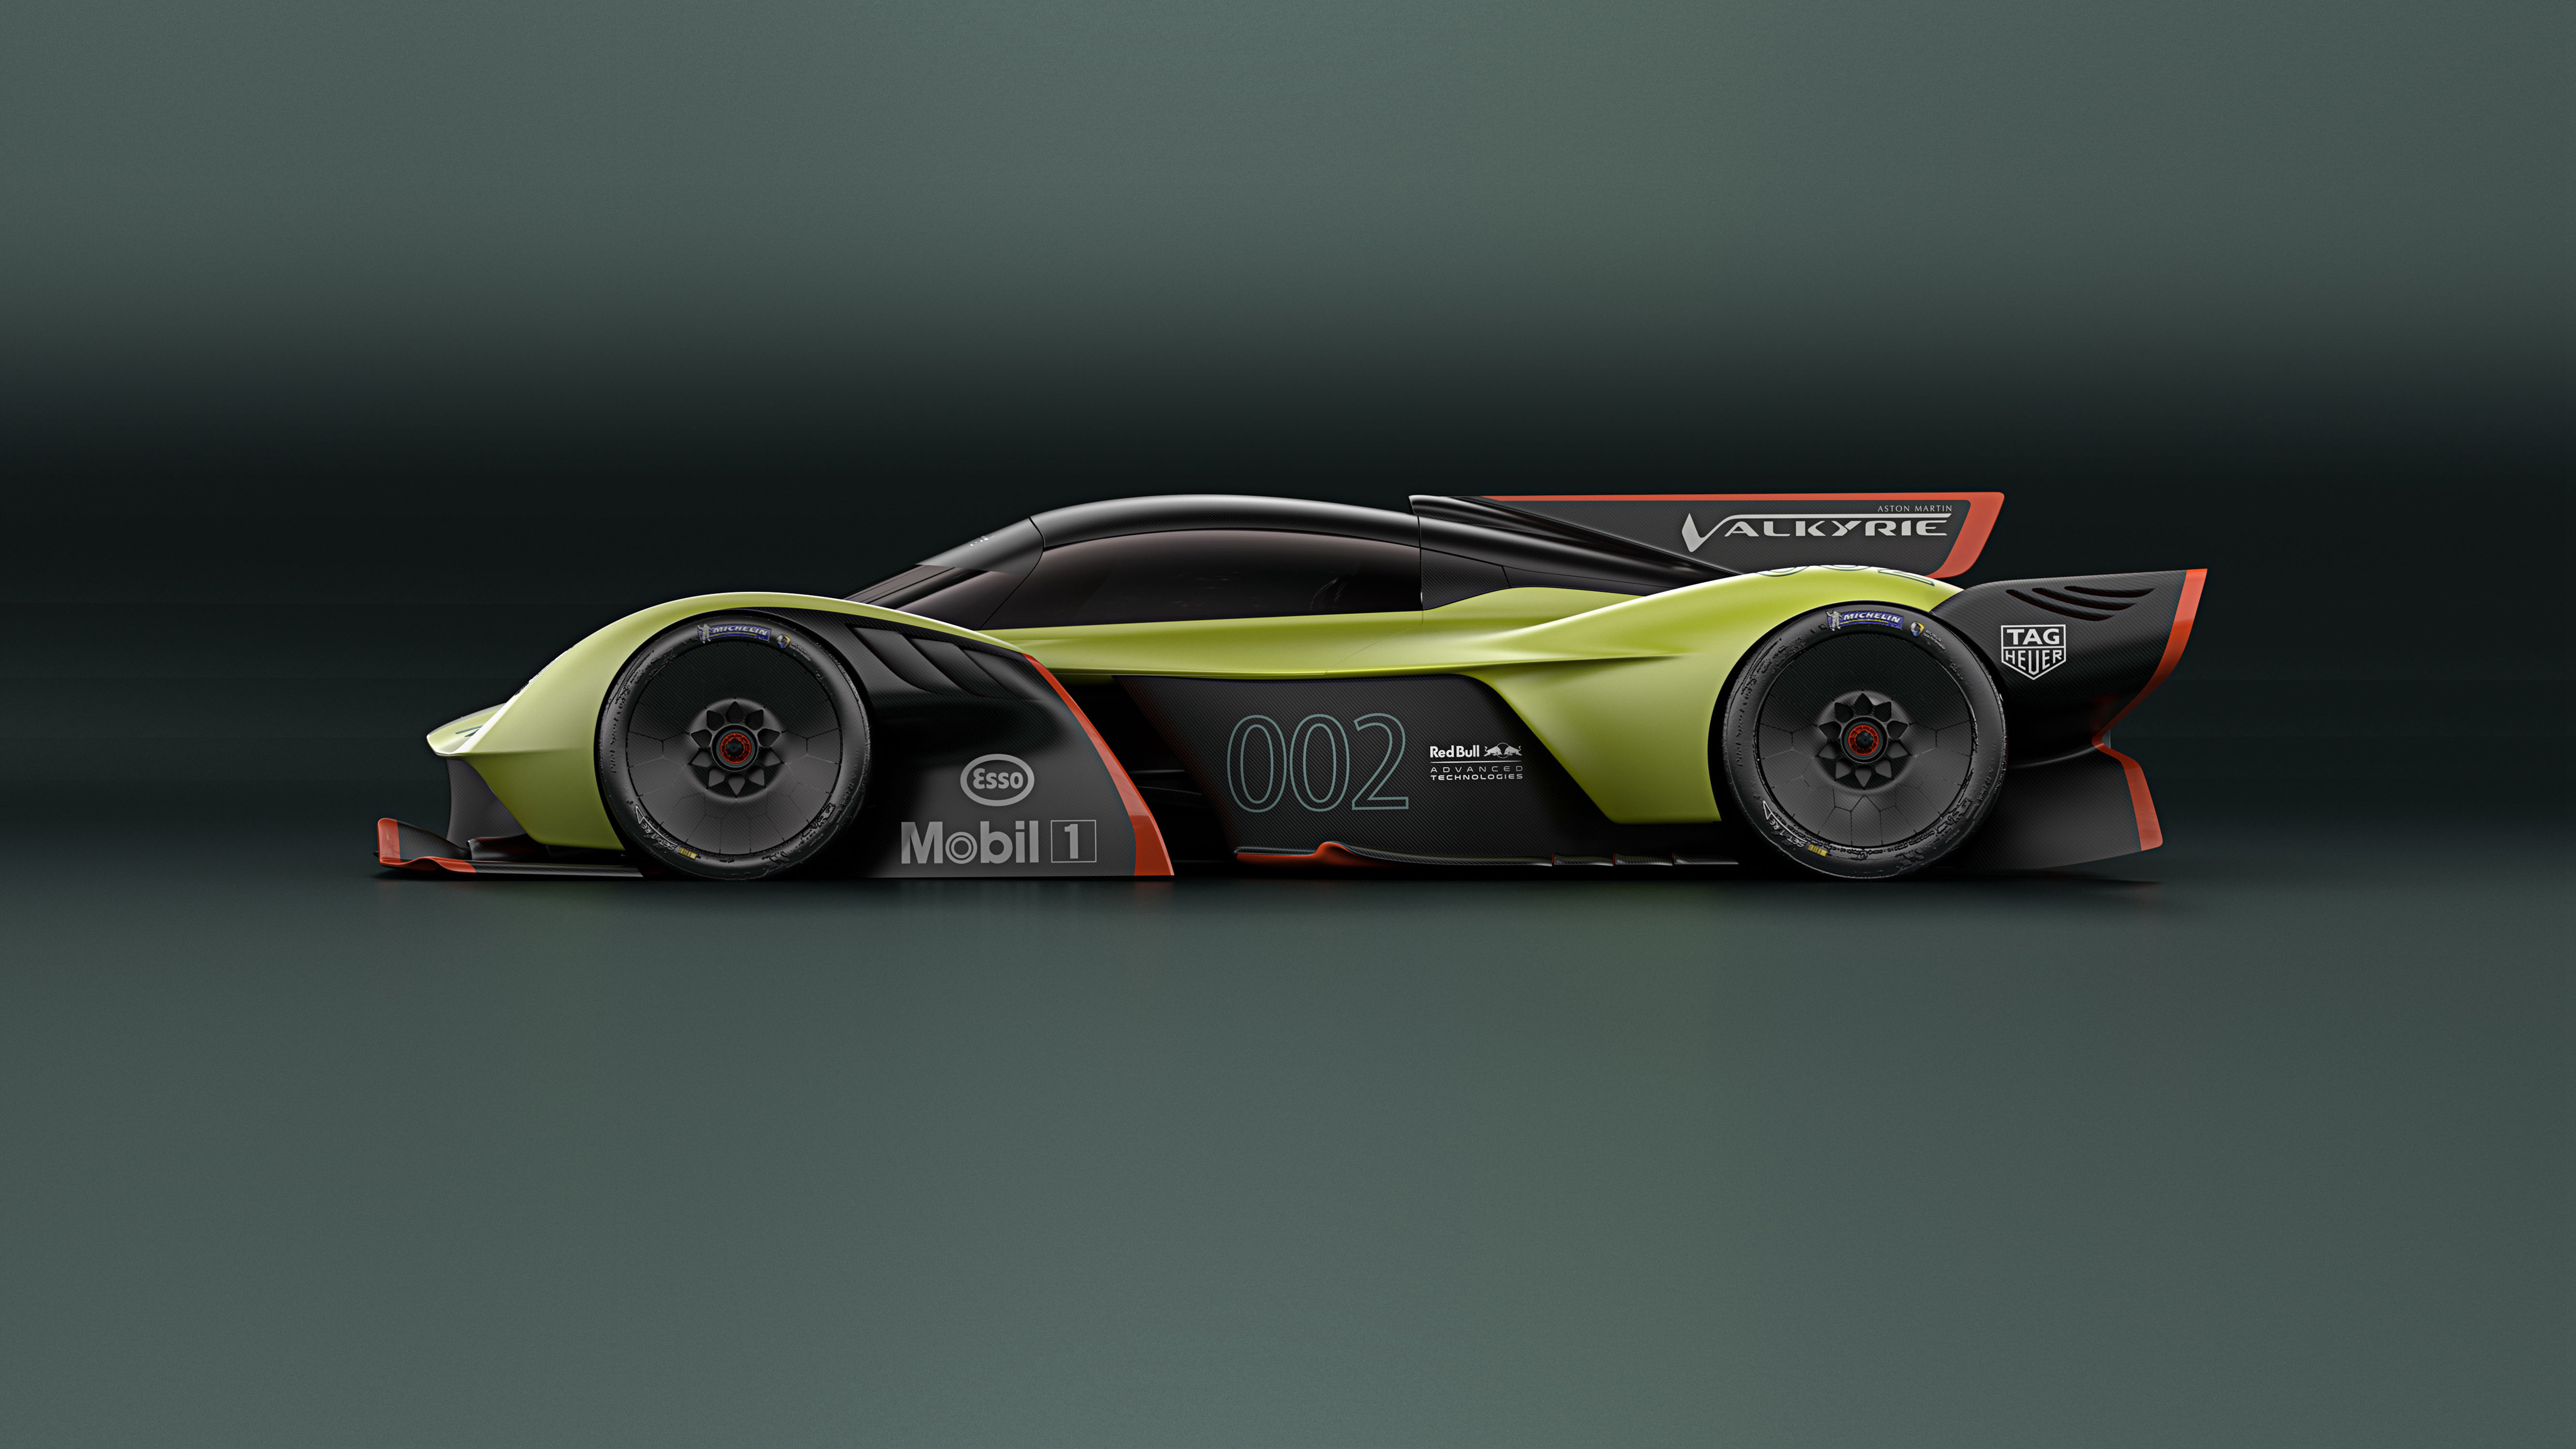 Aston Martin Valkyrie Top Upcoming Cars 2020